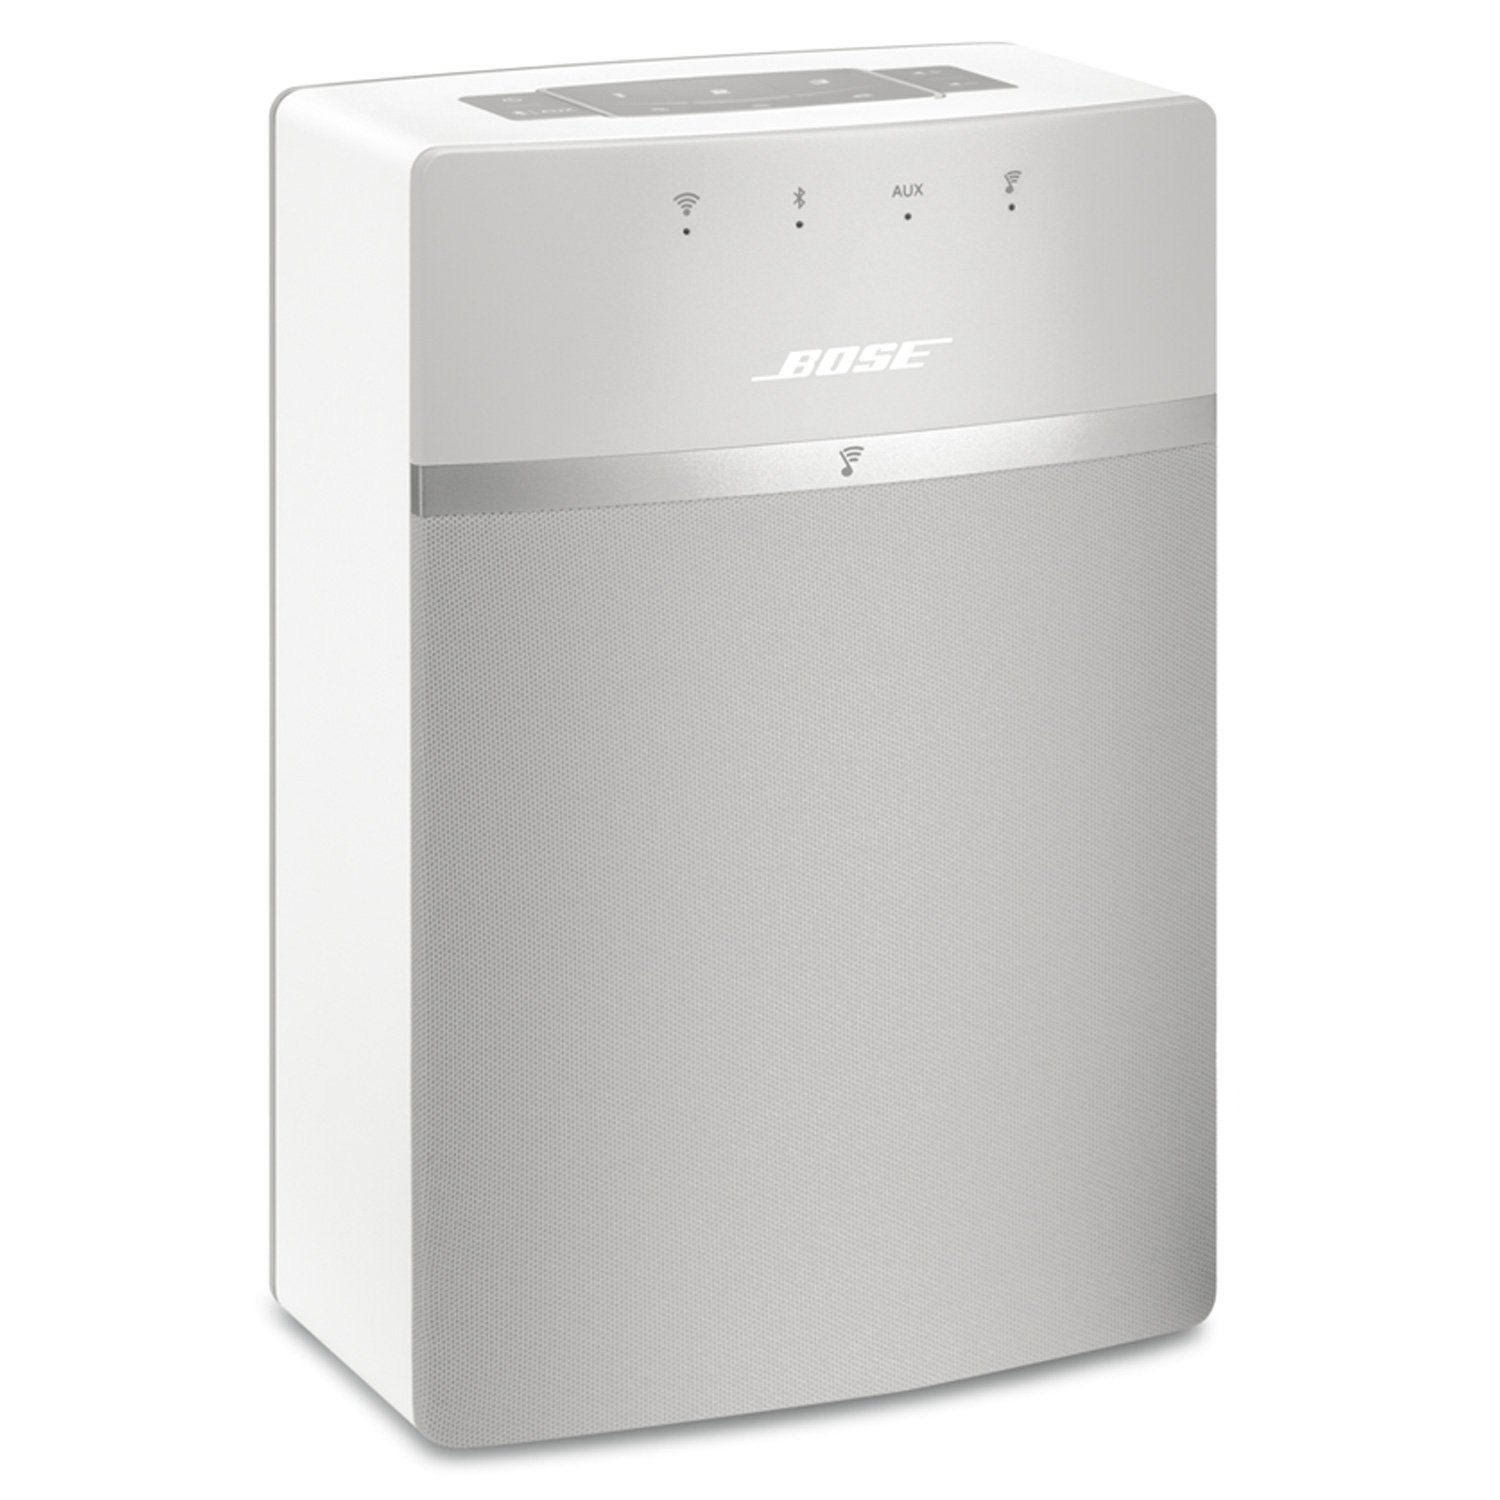 Bose SoundTouch 10 Wireless Music System White Price Buy Bose